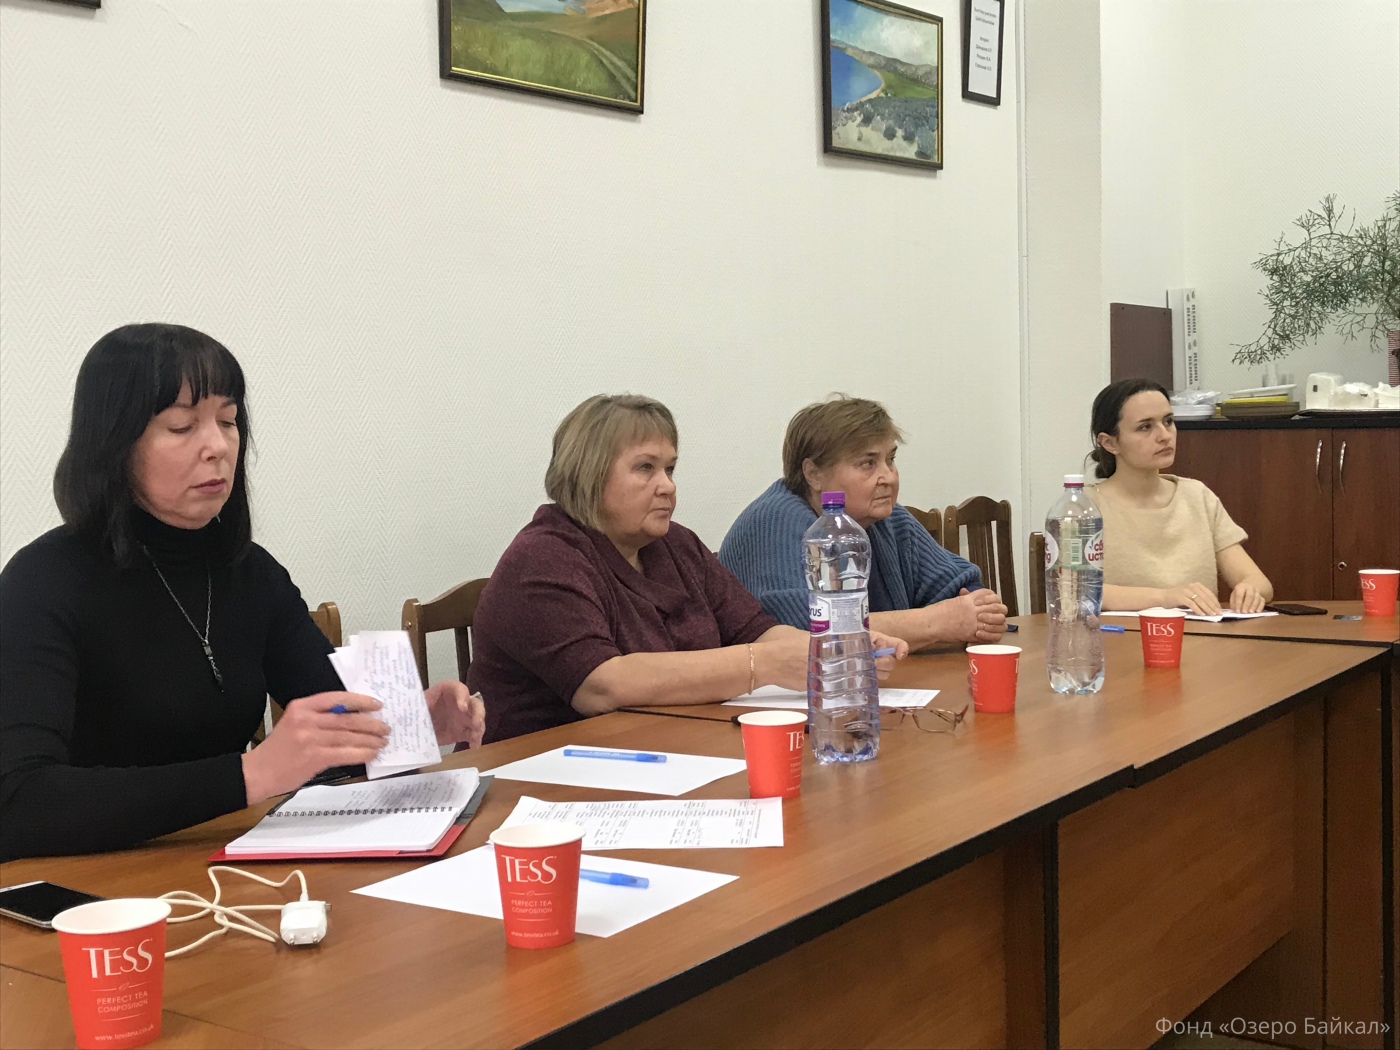 A round table on further studies of the Baikal seal at A.N. Severtsov Institute for Ecology and Evolution of RAS